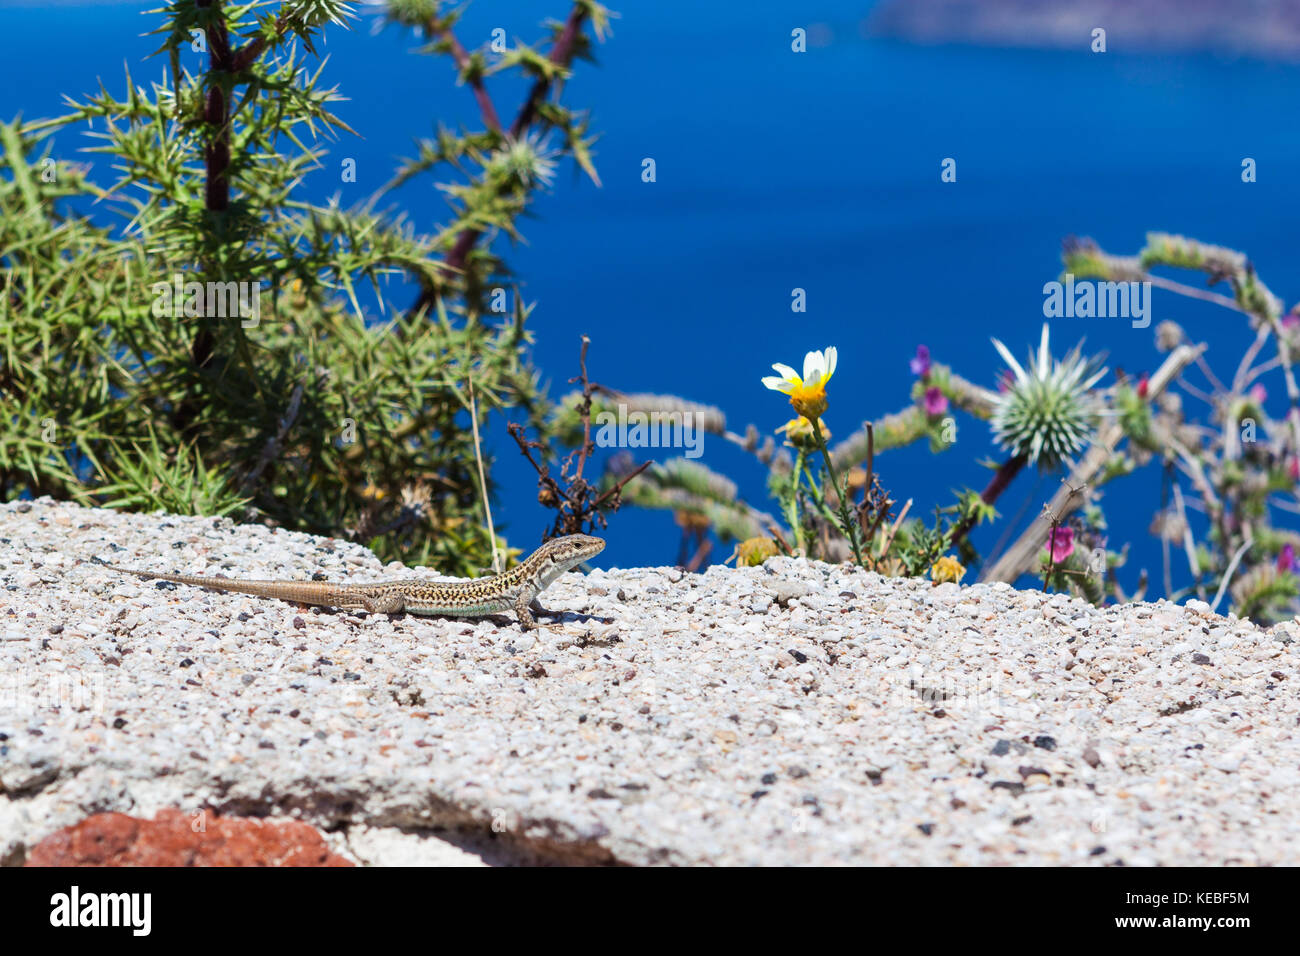 A Gecko in front of cliff top vegetation with a blue sea background - Stock Image